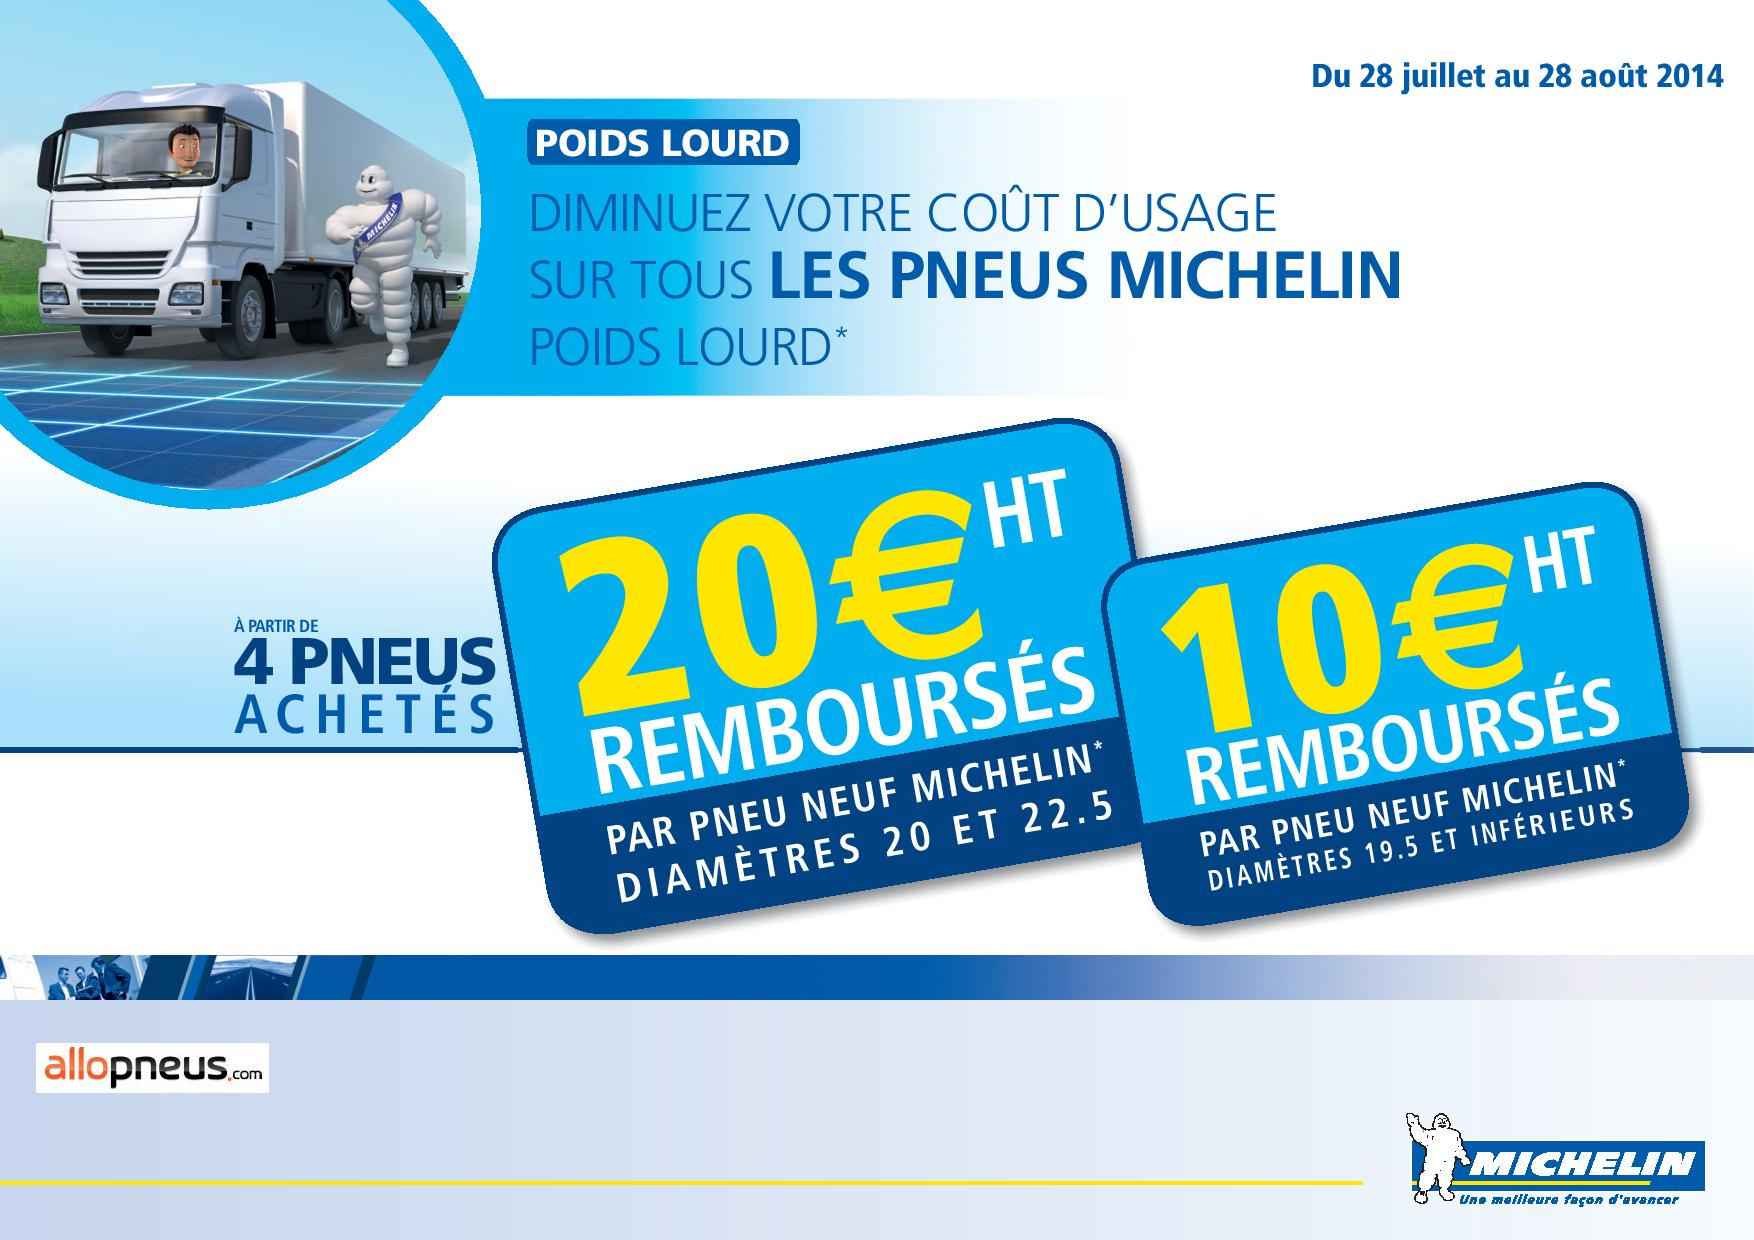 offre pro 20 ht rembours s sur pneus michelin poids lourds. Black Bedroom Furniture Sets. Home Design Ideas